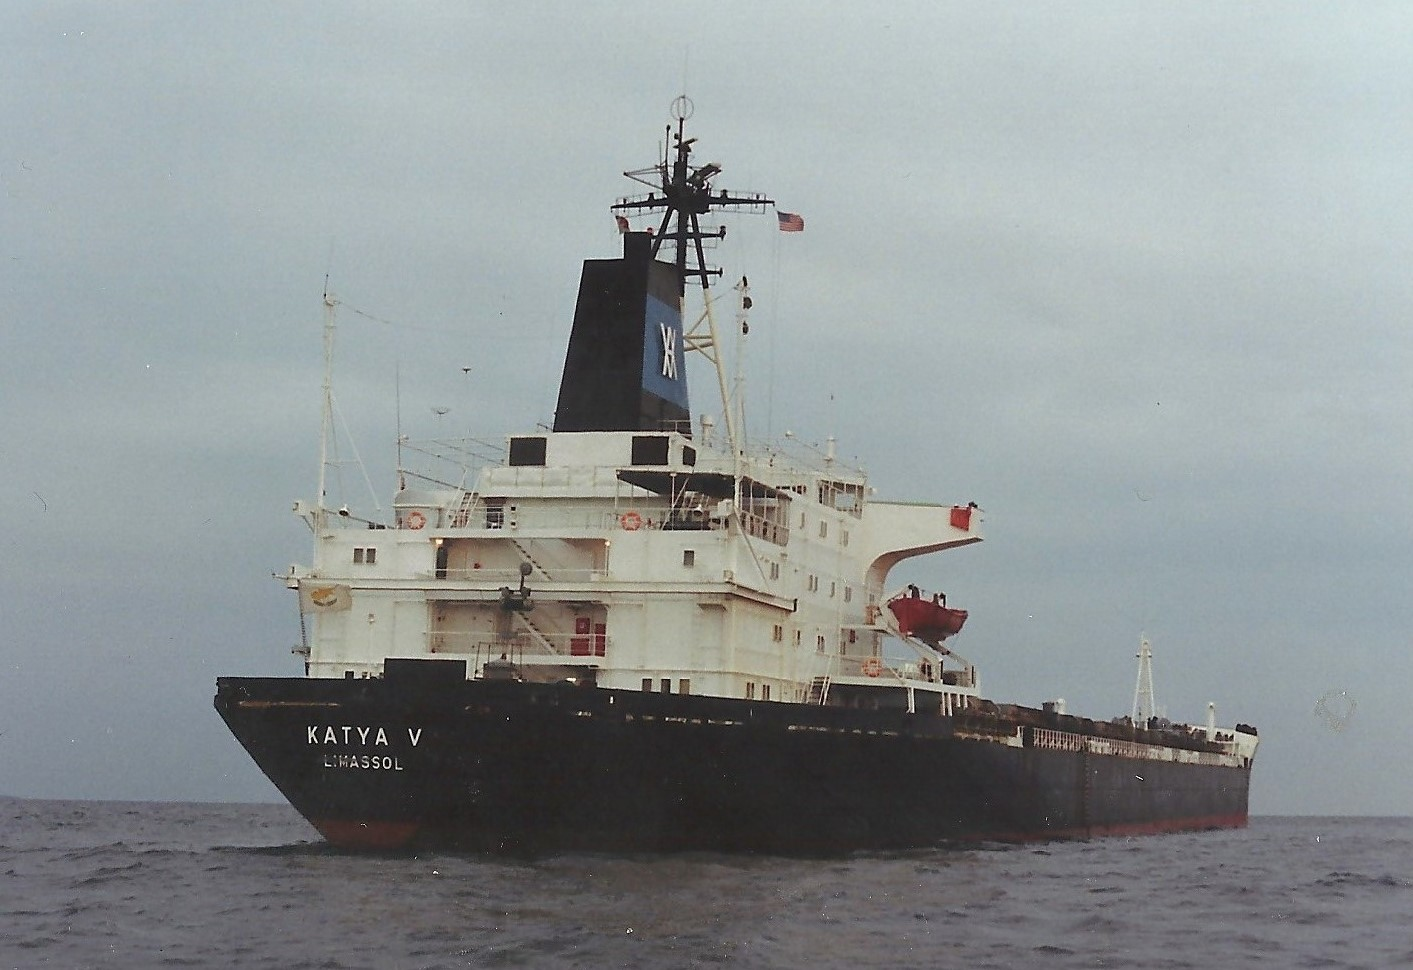 The bulk carrier Katya on Chesapeake built in 1981 and ran aground in the Chesapeake Bay in 1992 with two Chesapeake Bay Pilots on board. THE CHESAPEAKE TODAY photo